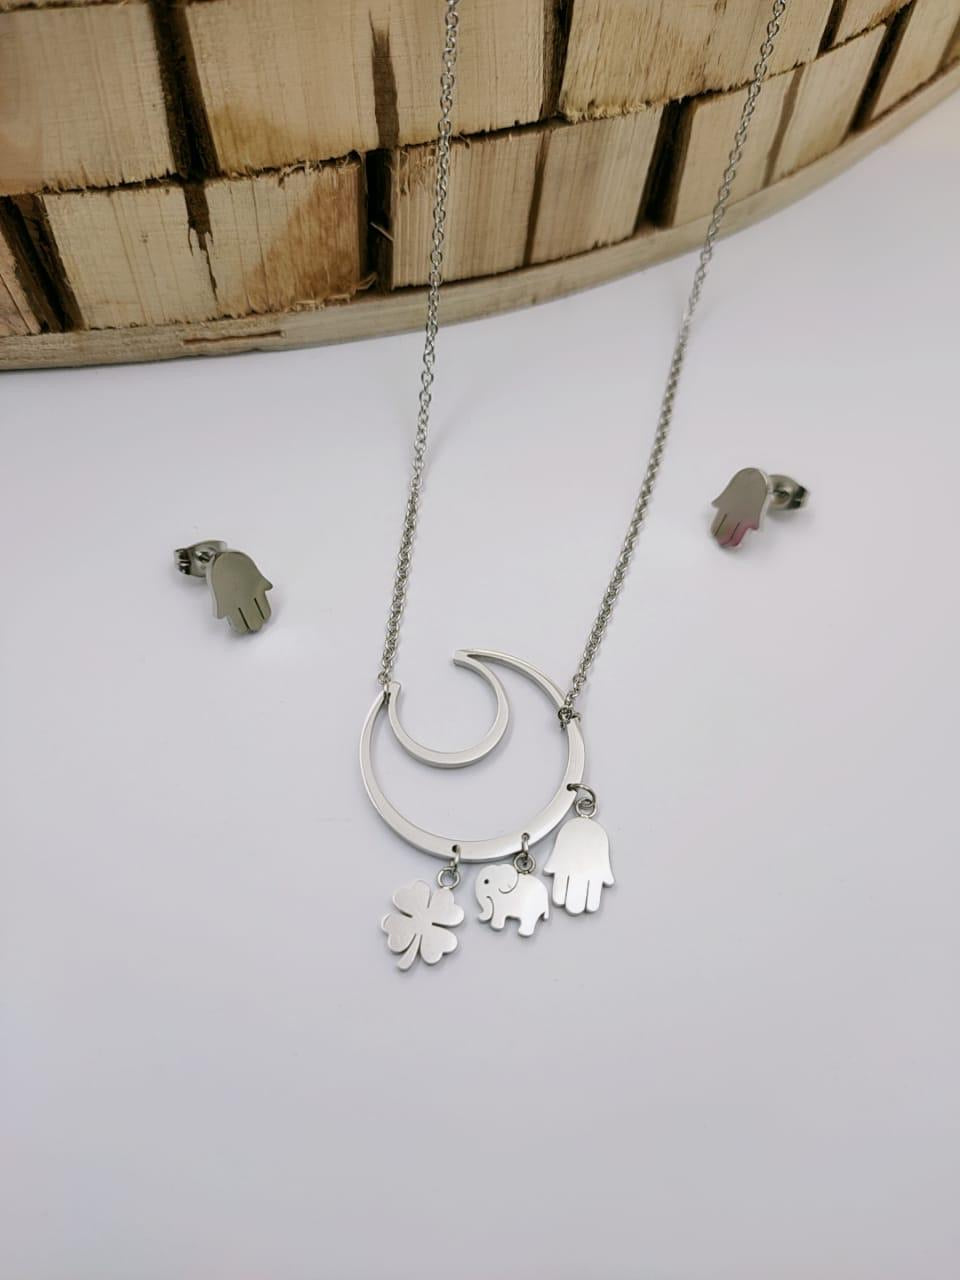 Crescent Moon Shaped Pendant Necklace with Earrings